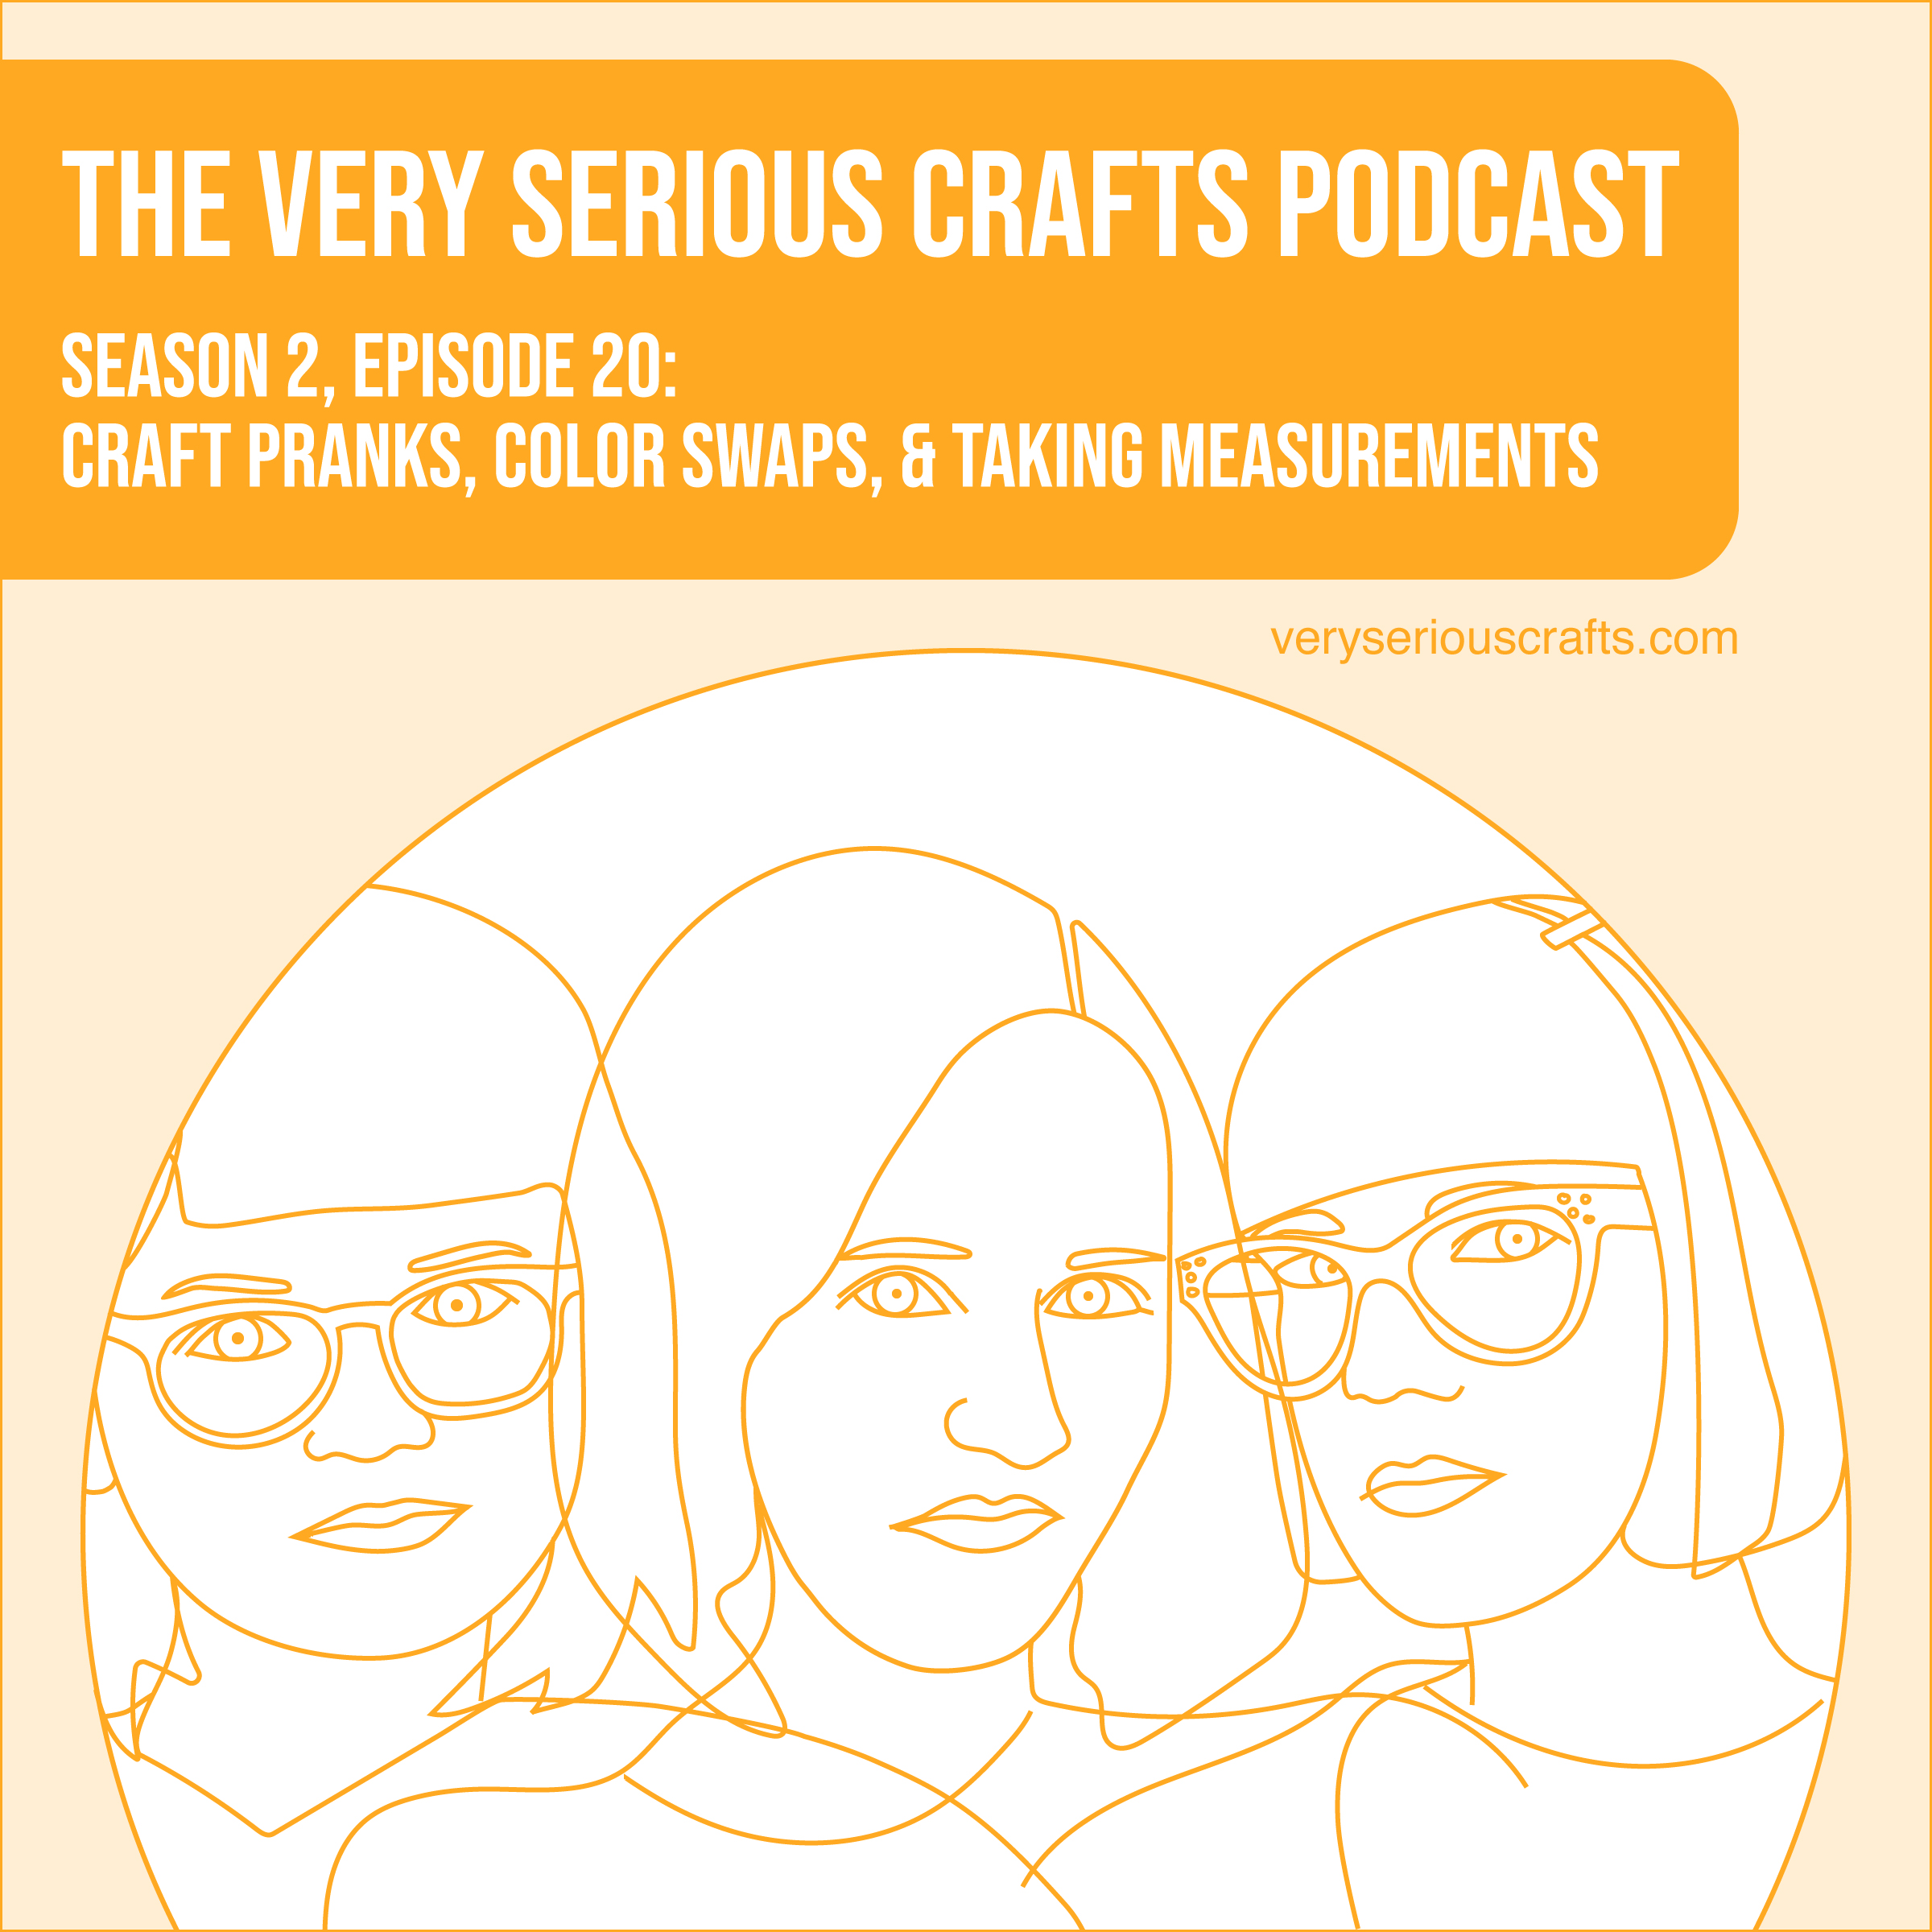 The Very Serious Crafts Podcast, Season 2: Episode 20 – Craft Pranks, Color Swaps, and Taking Measurements